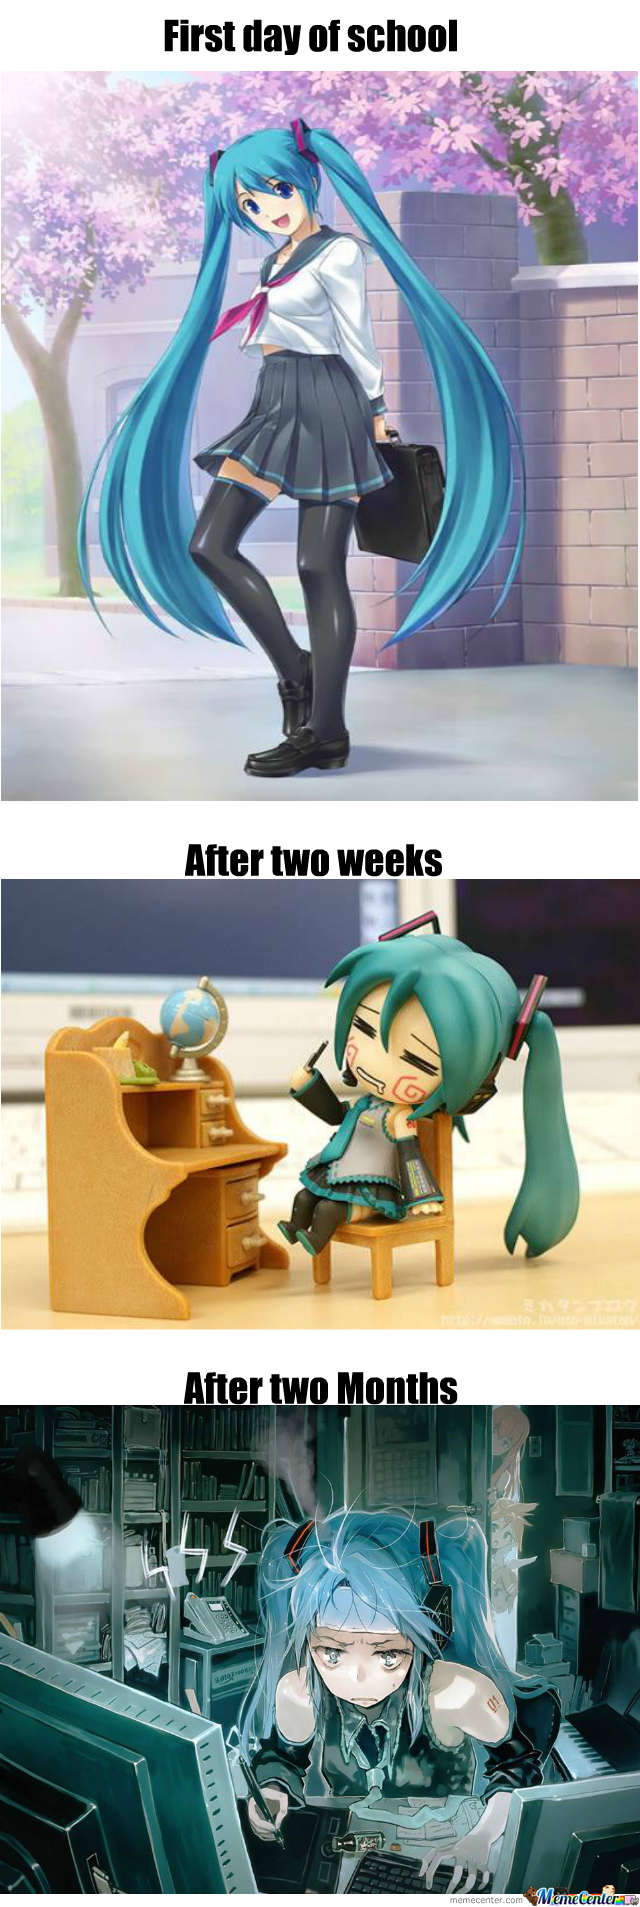 Miku Does Not Like School (And Neither Do I)